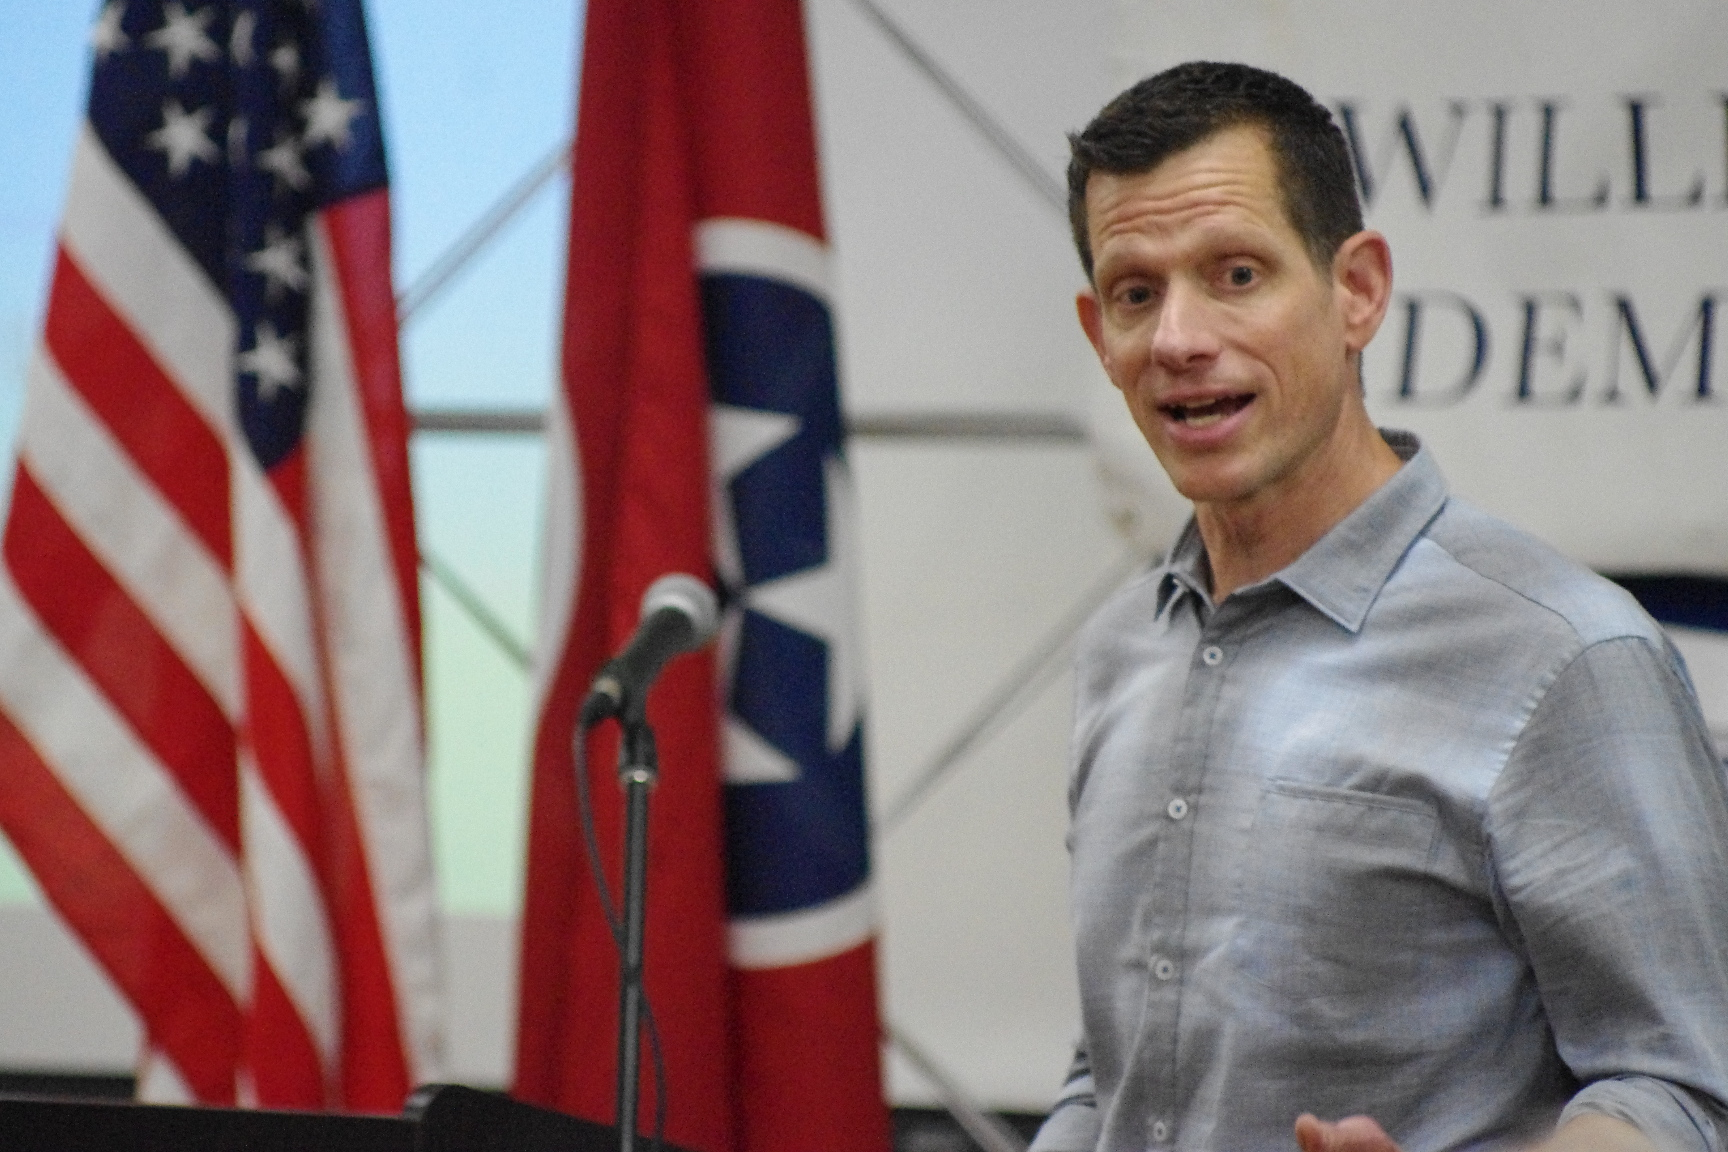 Democratic U.S. Senate Candidate James Mackler breaks down positions on health care, gun control and more during campaign rally in Franklin